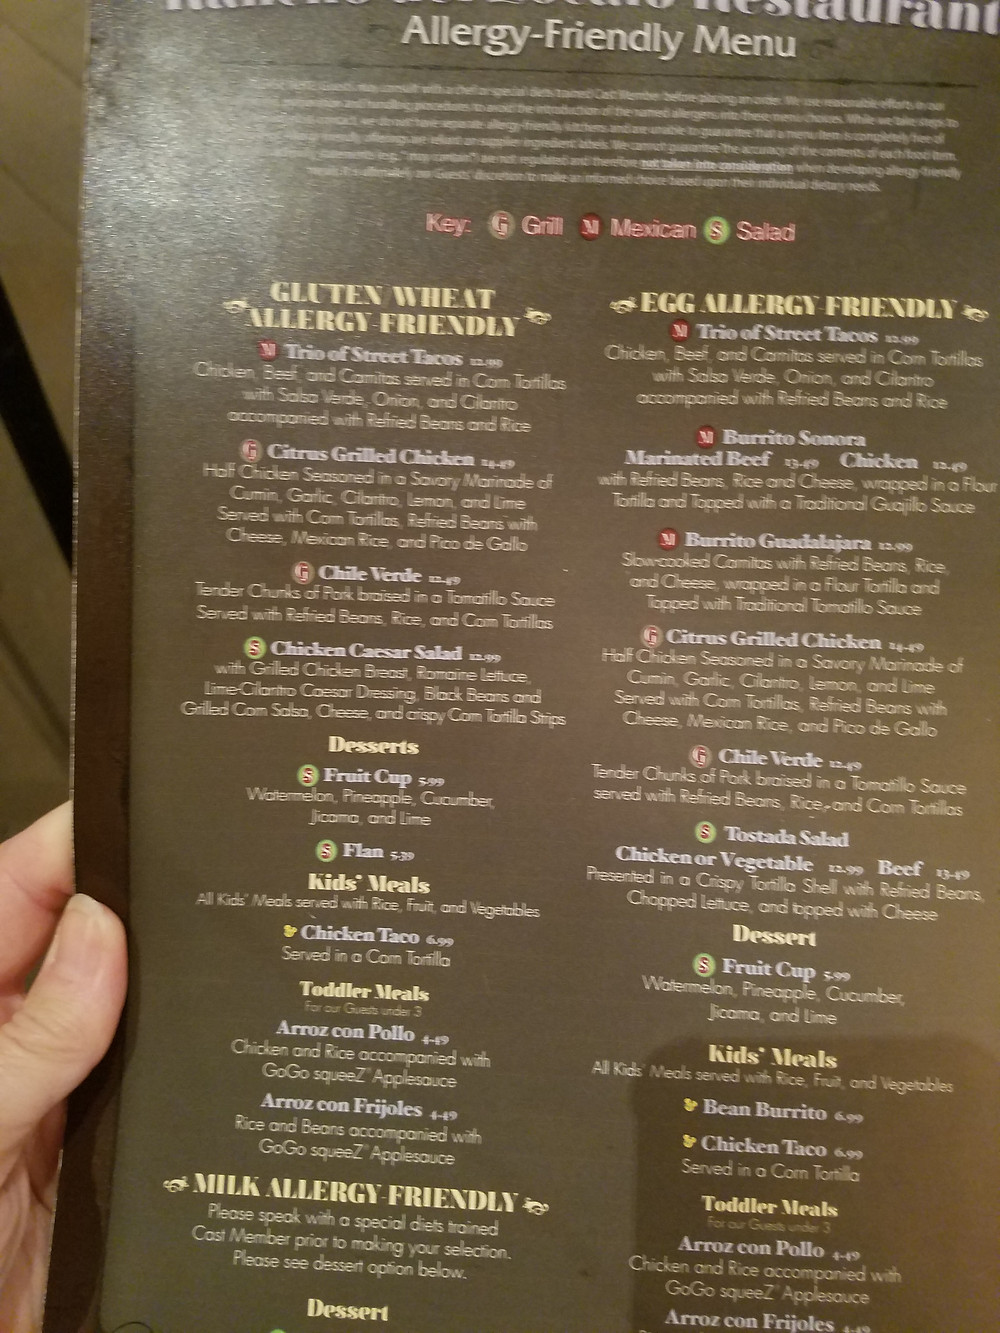 Rancho del Zocalo Gluten & egg allergy-friendly menu